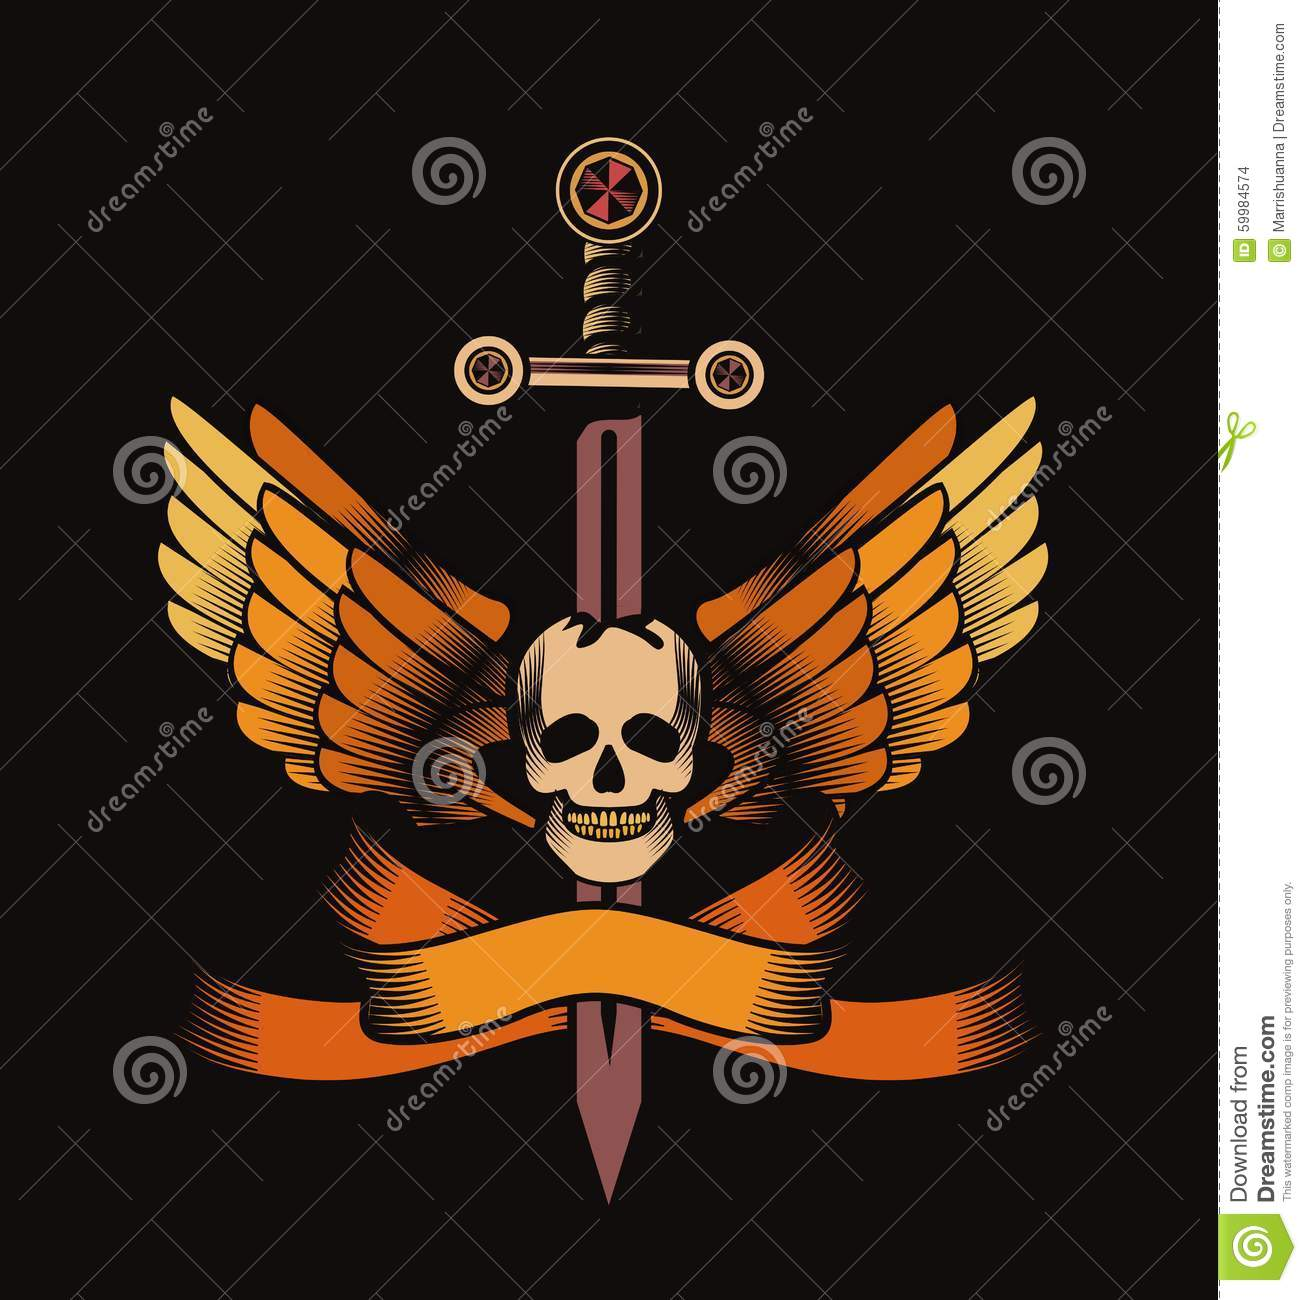 Vintage Skull With Sword And Wings Emblem Cartoon Vector